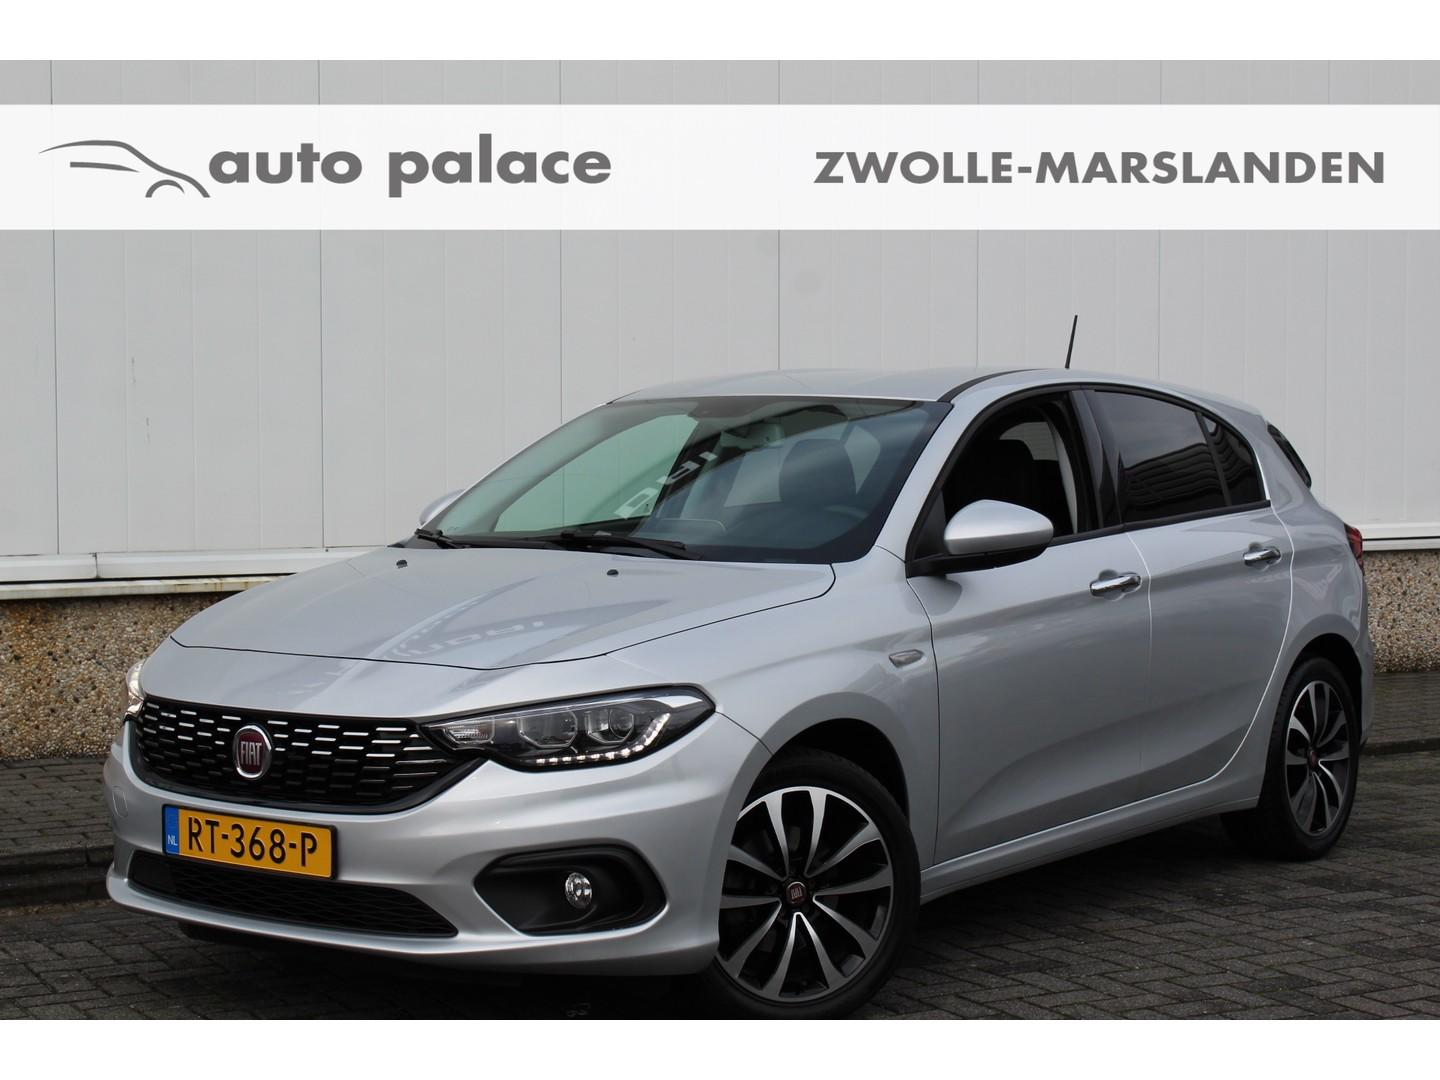 Fiat Tipo Hatchback 1.6 110pk automaat business lusso